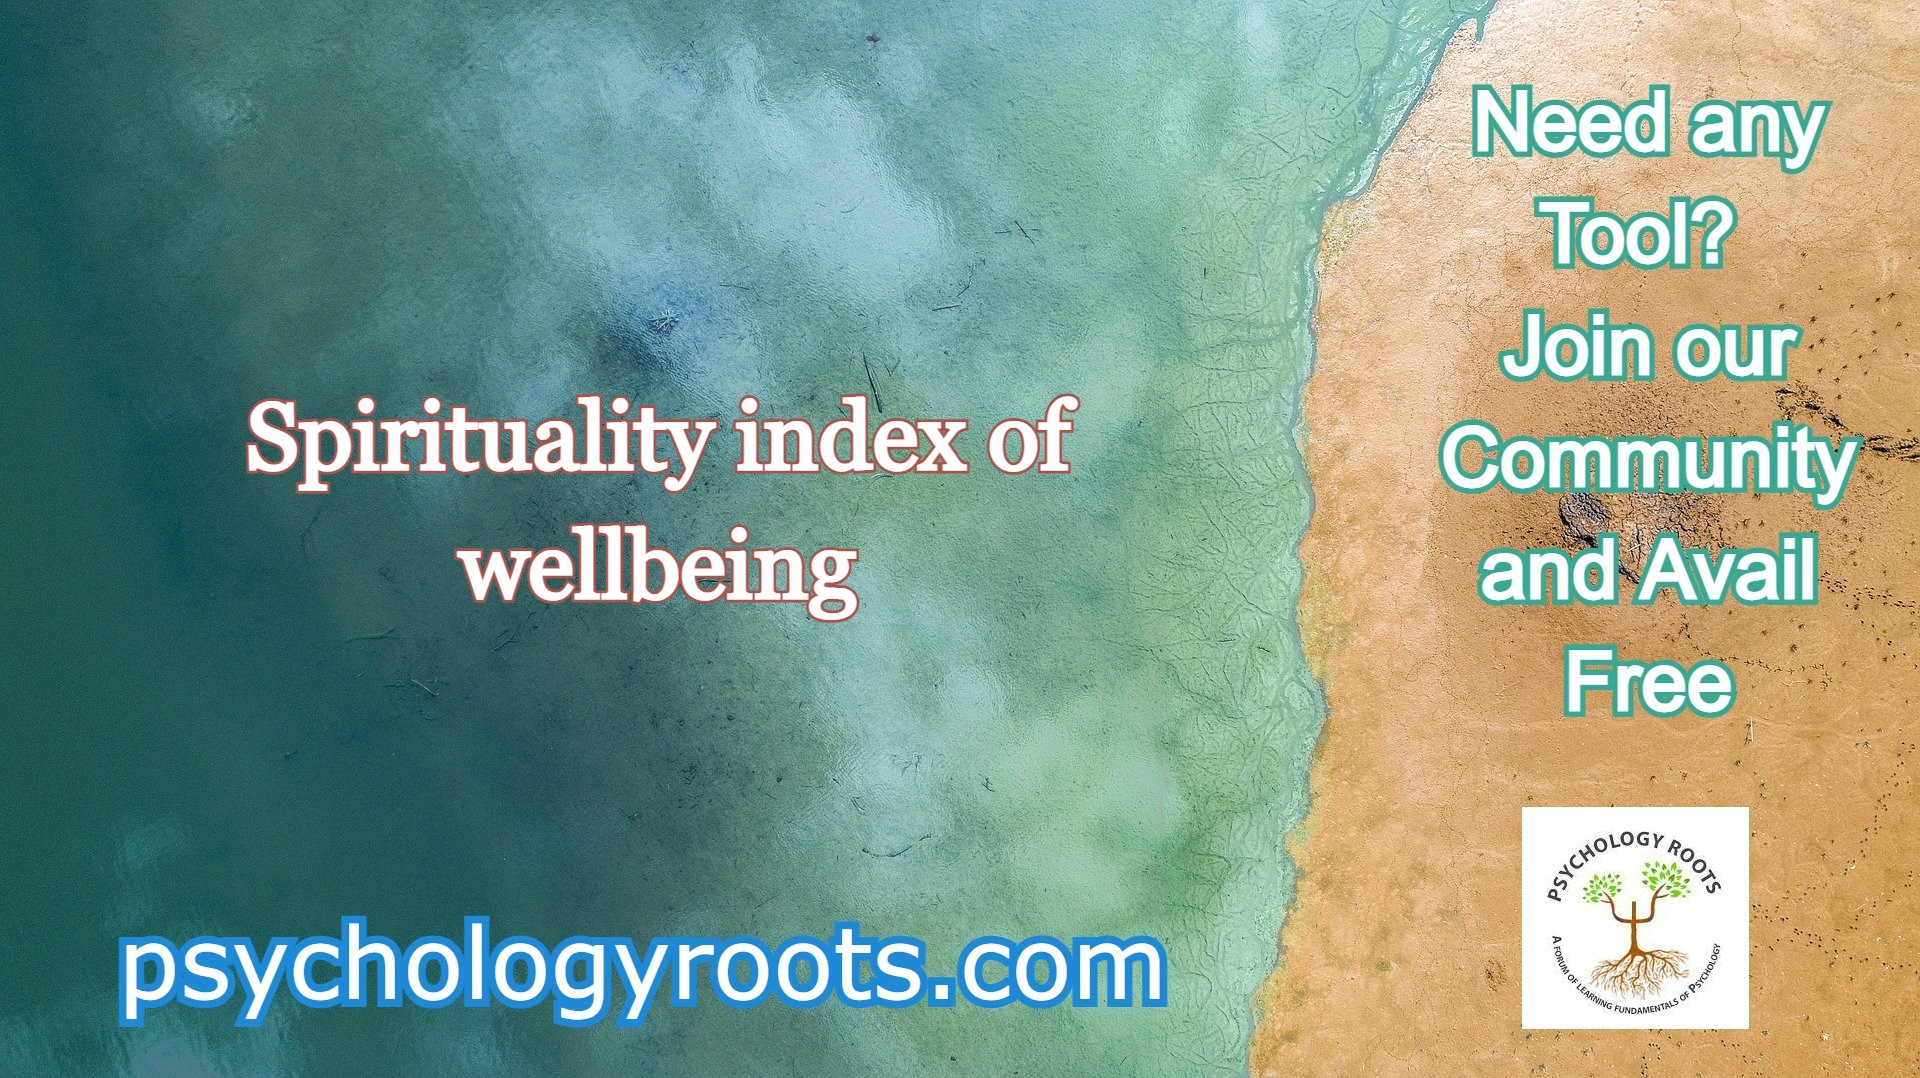 Spirituality index of wellbeing